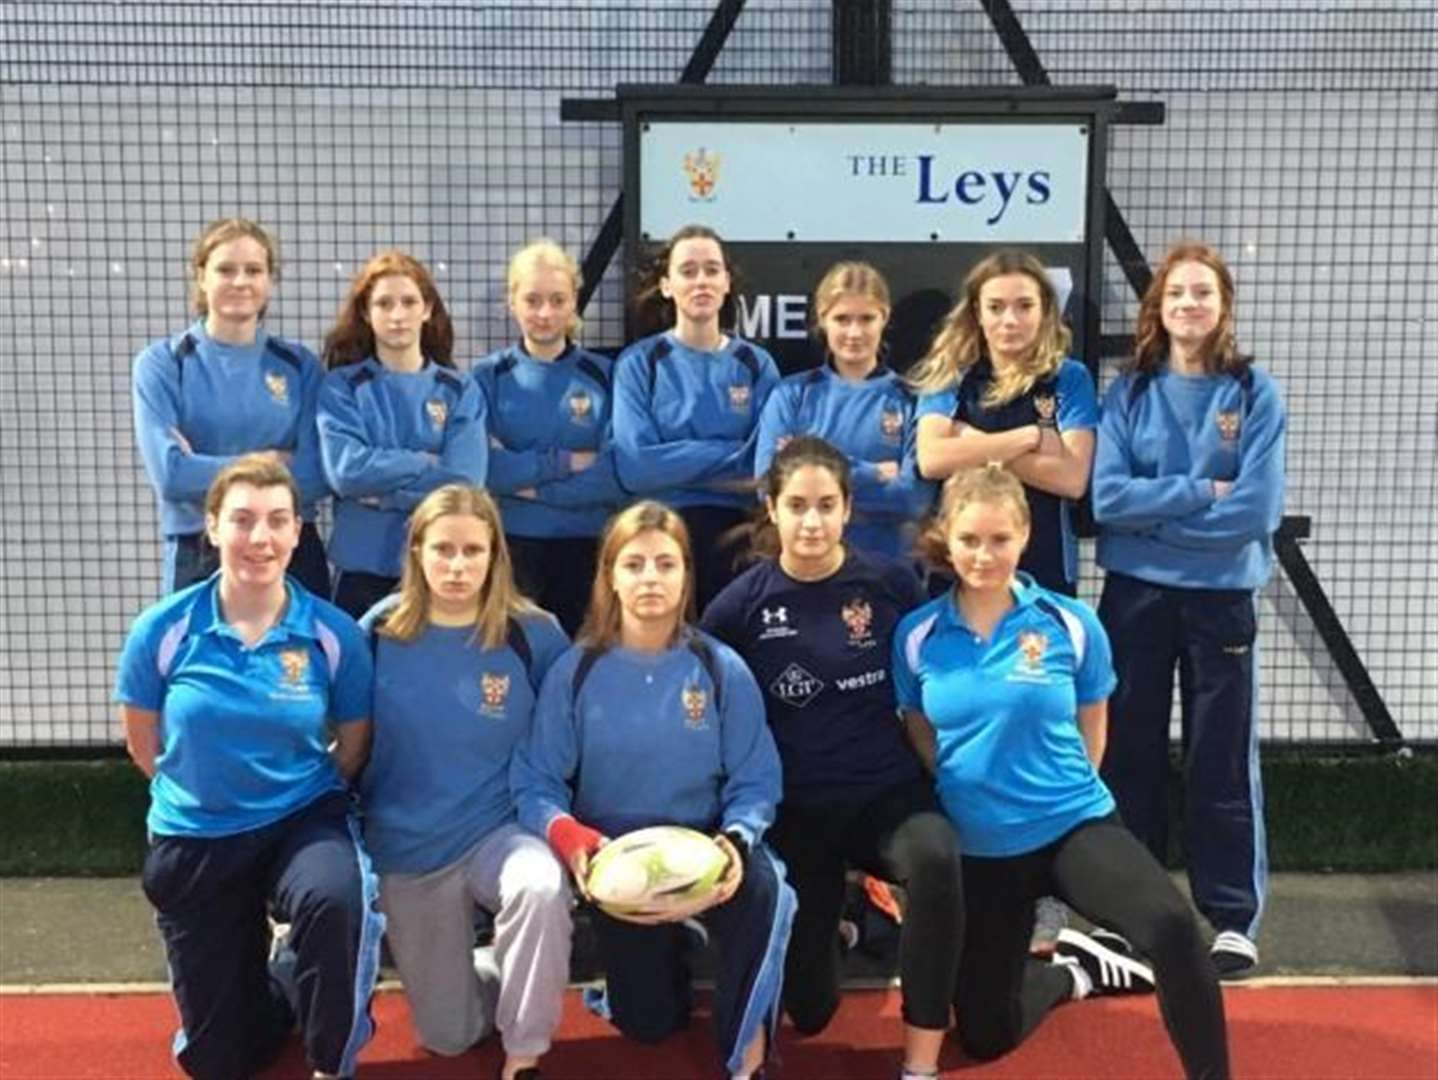 Students drive introduction of girls' rugby at The Leys School